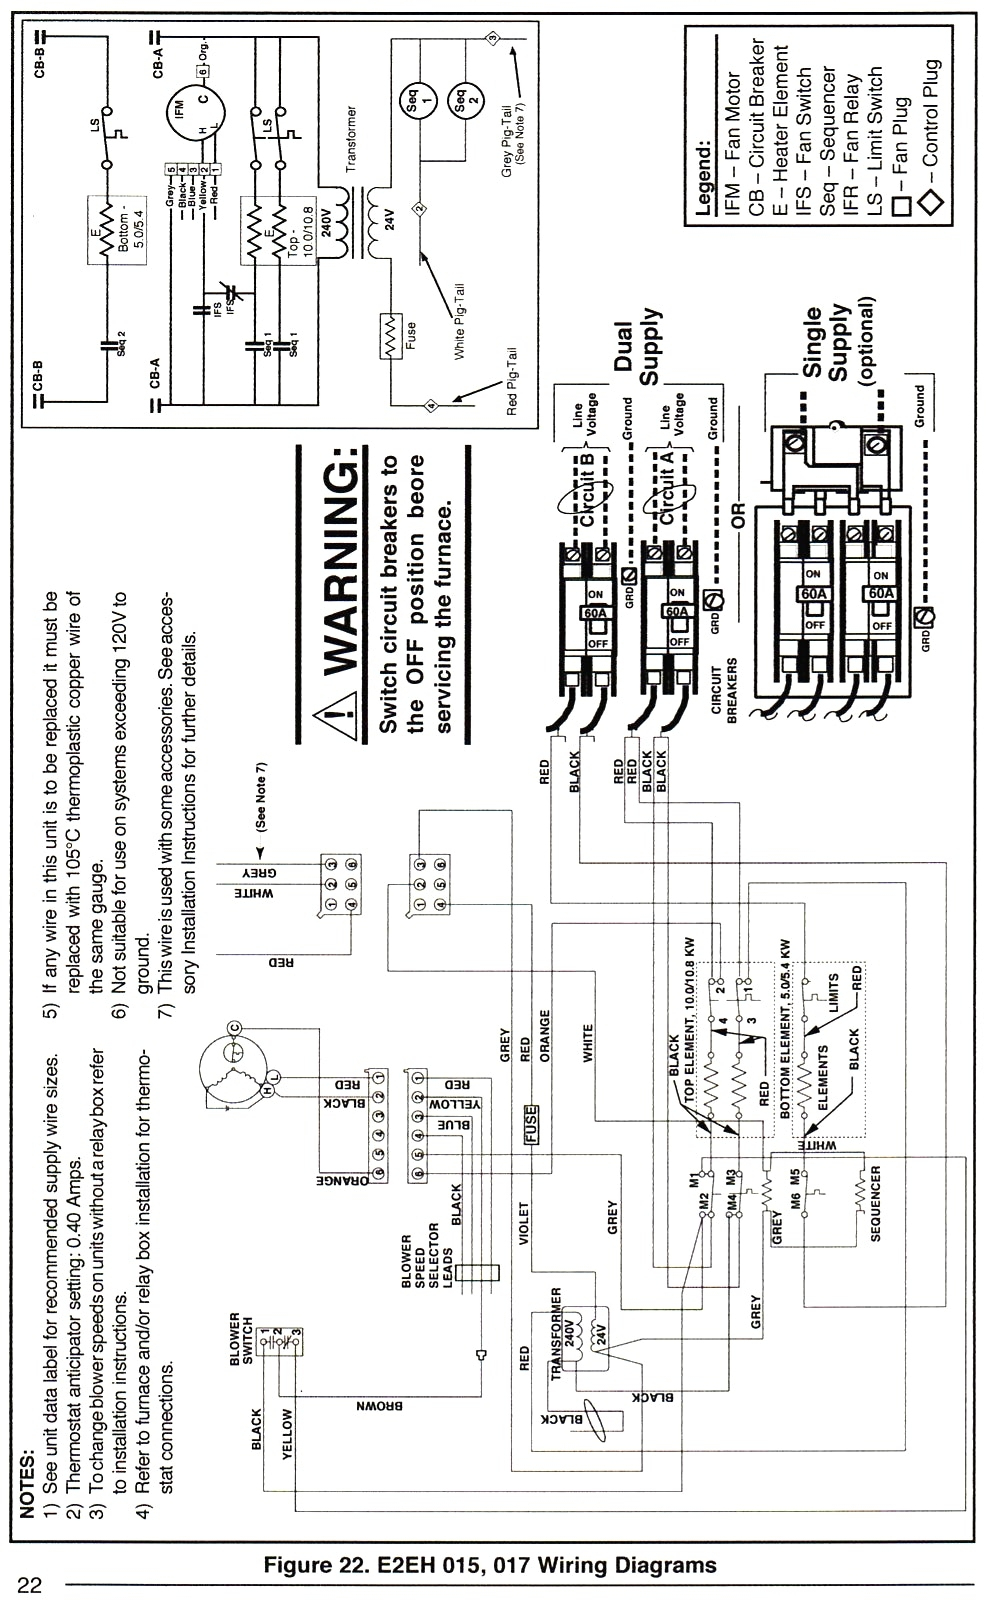 Nordyne Mobile Home Electric Furnace Wiring - Wiring Block Diagram - Nordyne Wiring Diagram Electric Furnace